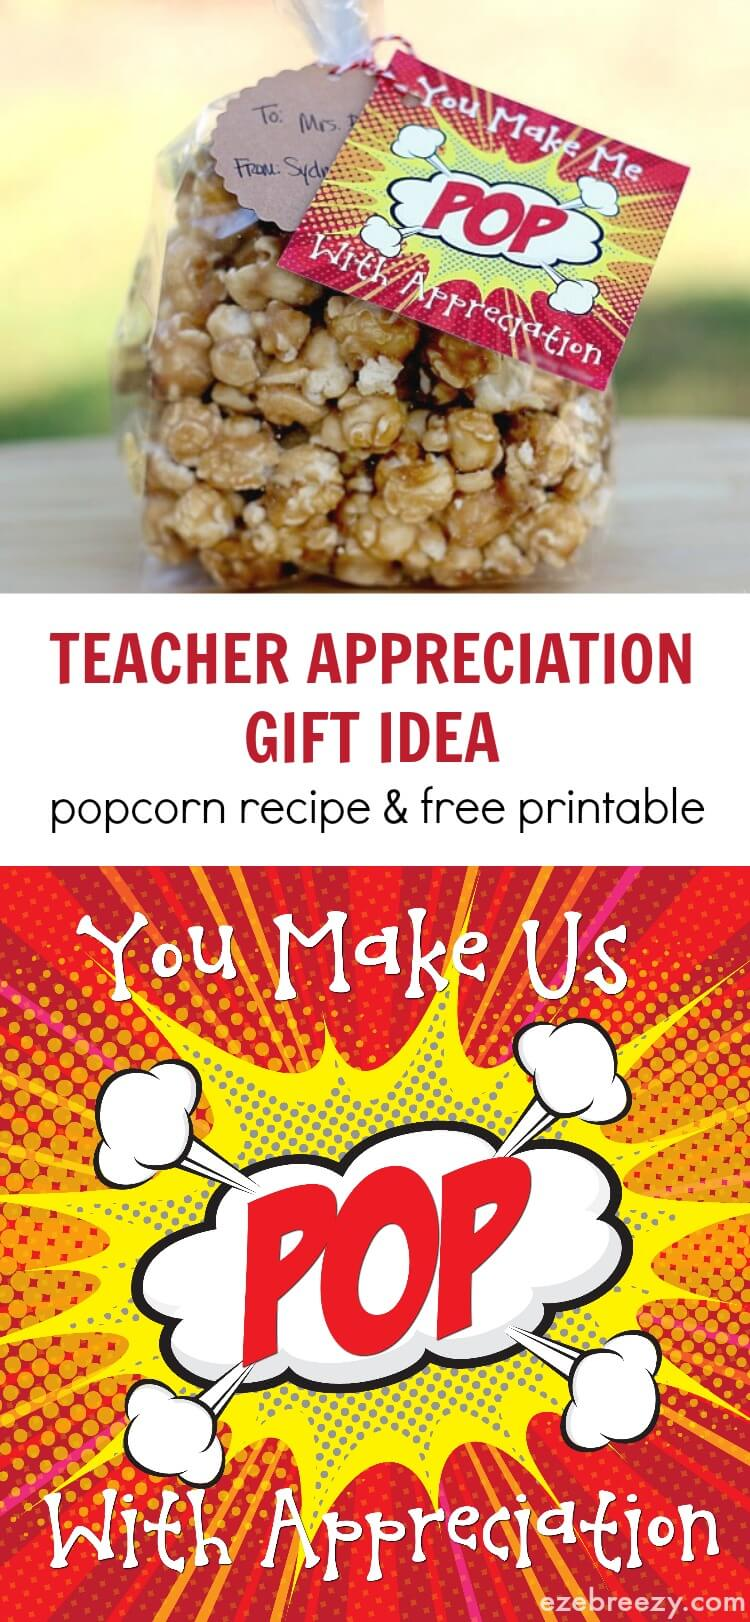 Popcorn Teacher Appreciation Gift Idea with recipe and free printable!  Warning...this popcorn it addicting:) - ezebreezy.com